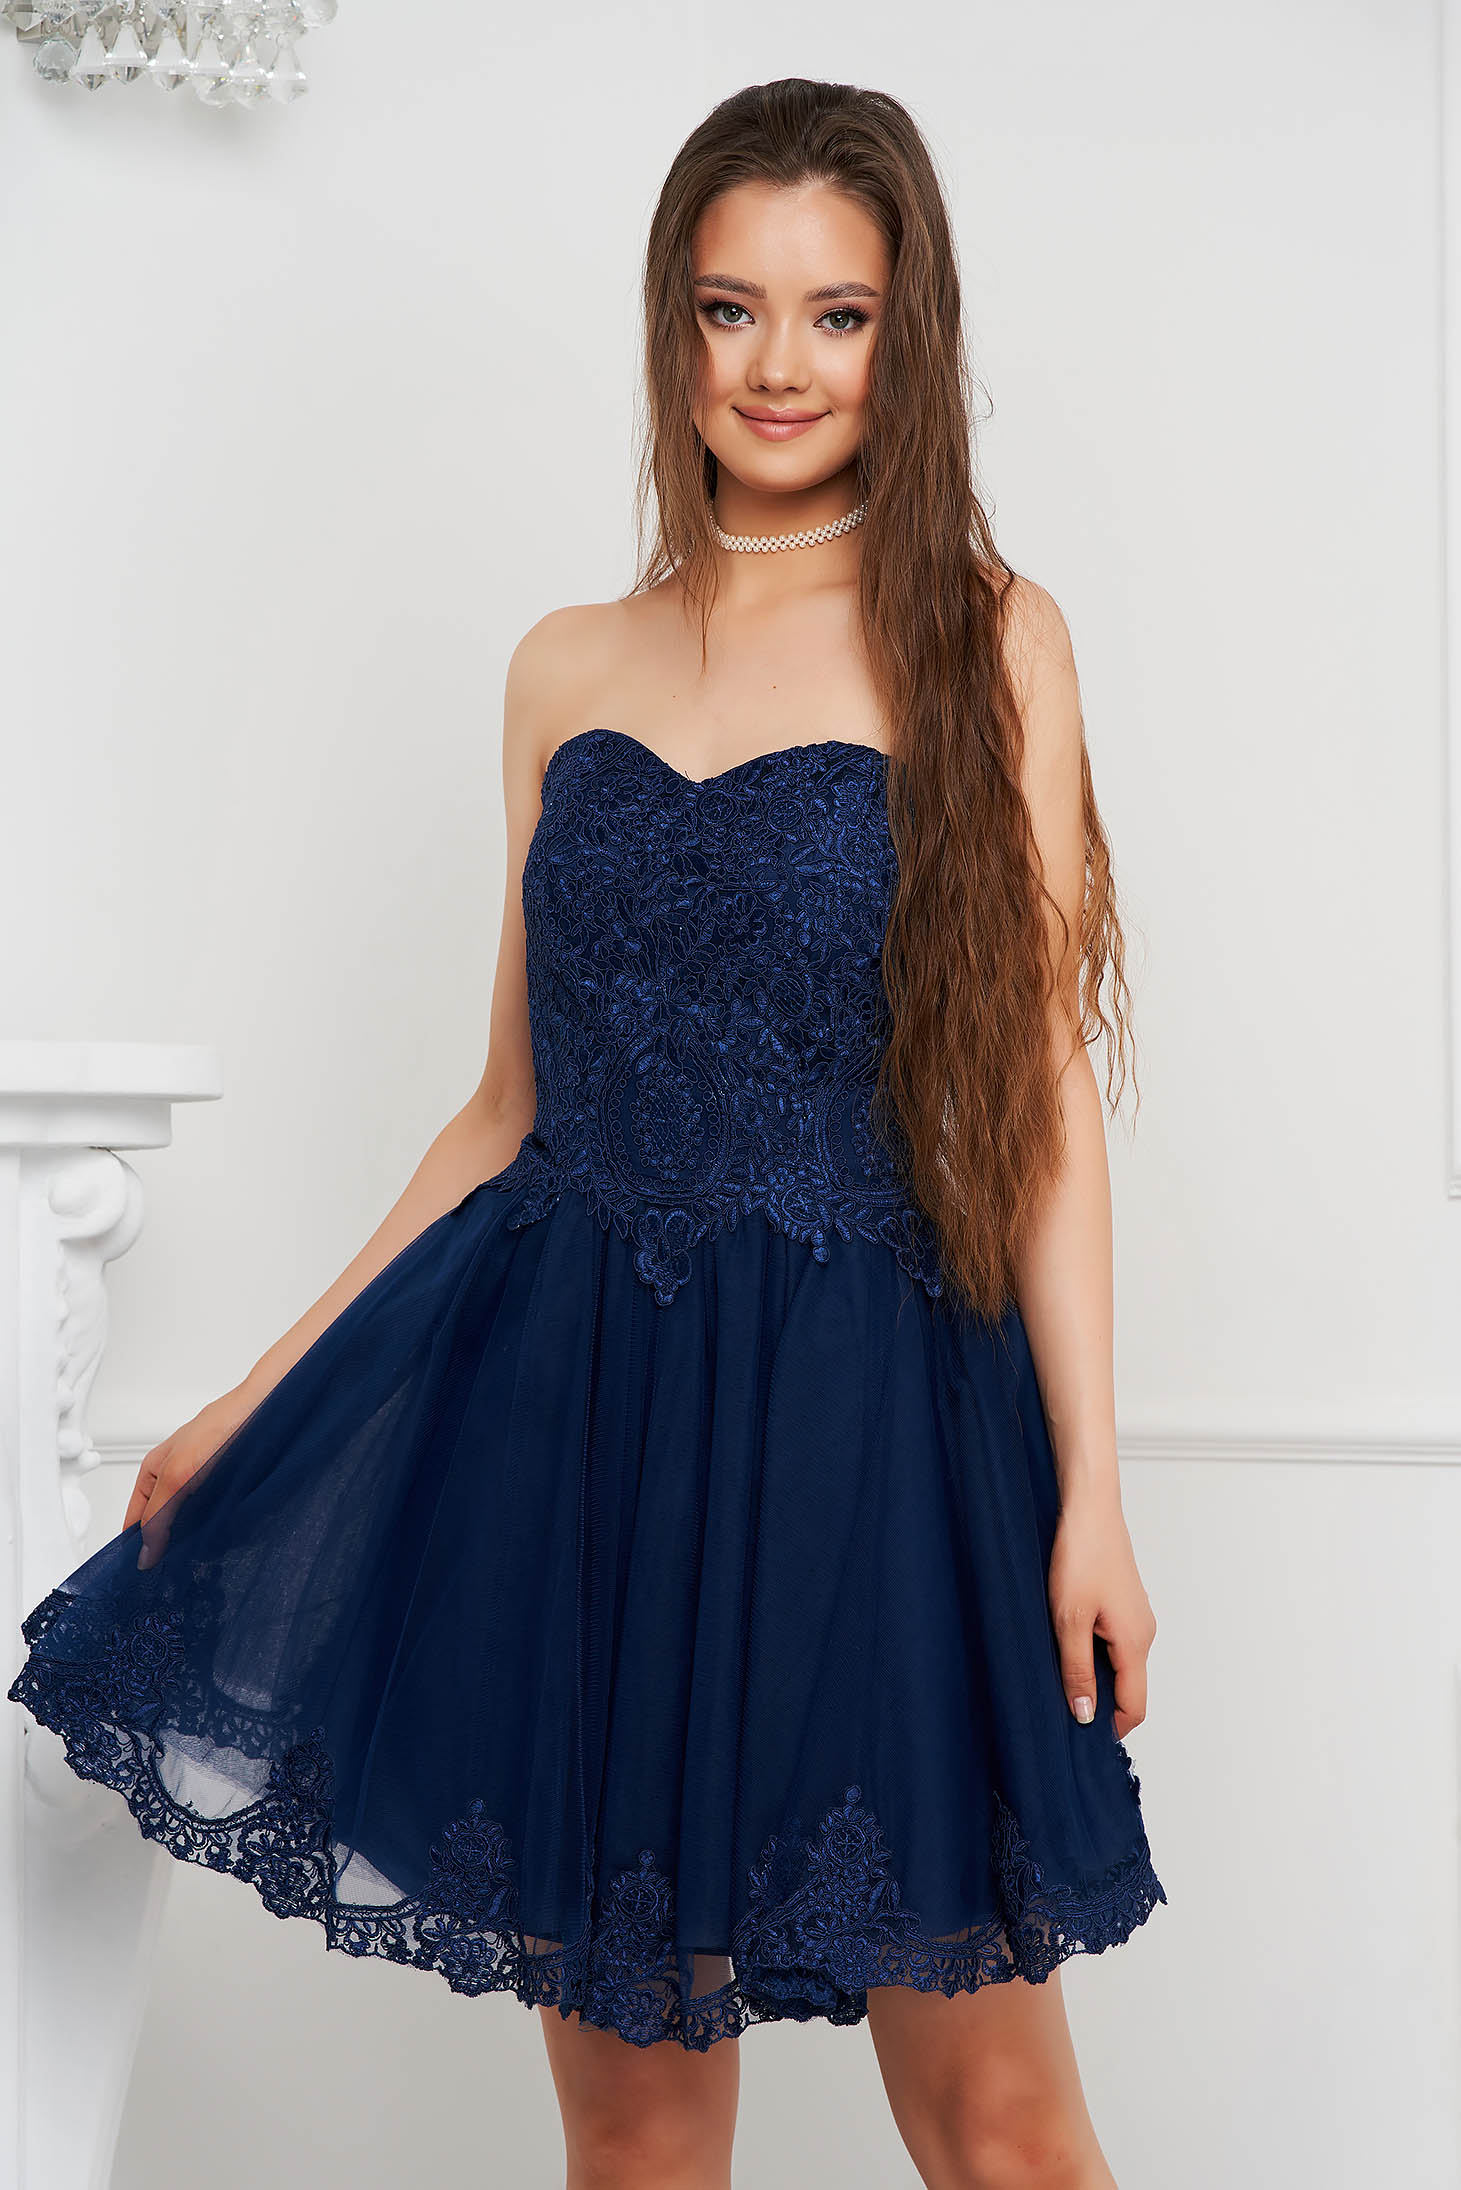 Darkblue dress short cut occasional cloche from veil fabric with push-up cups with embroidery details